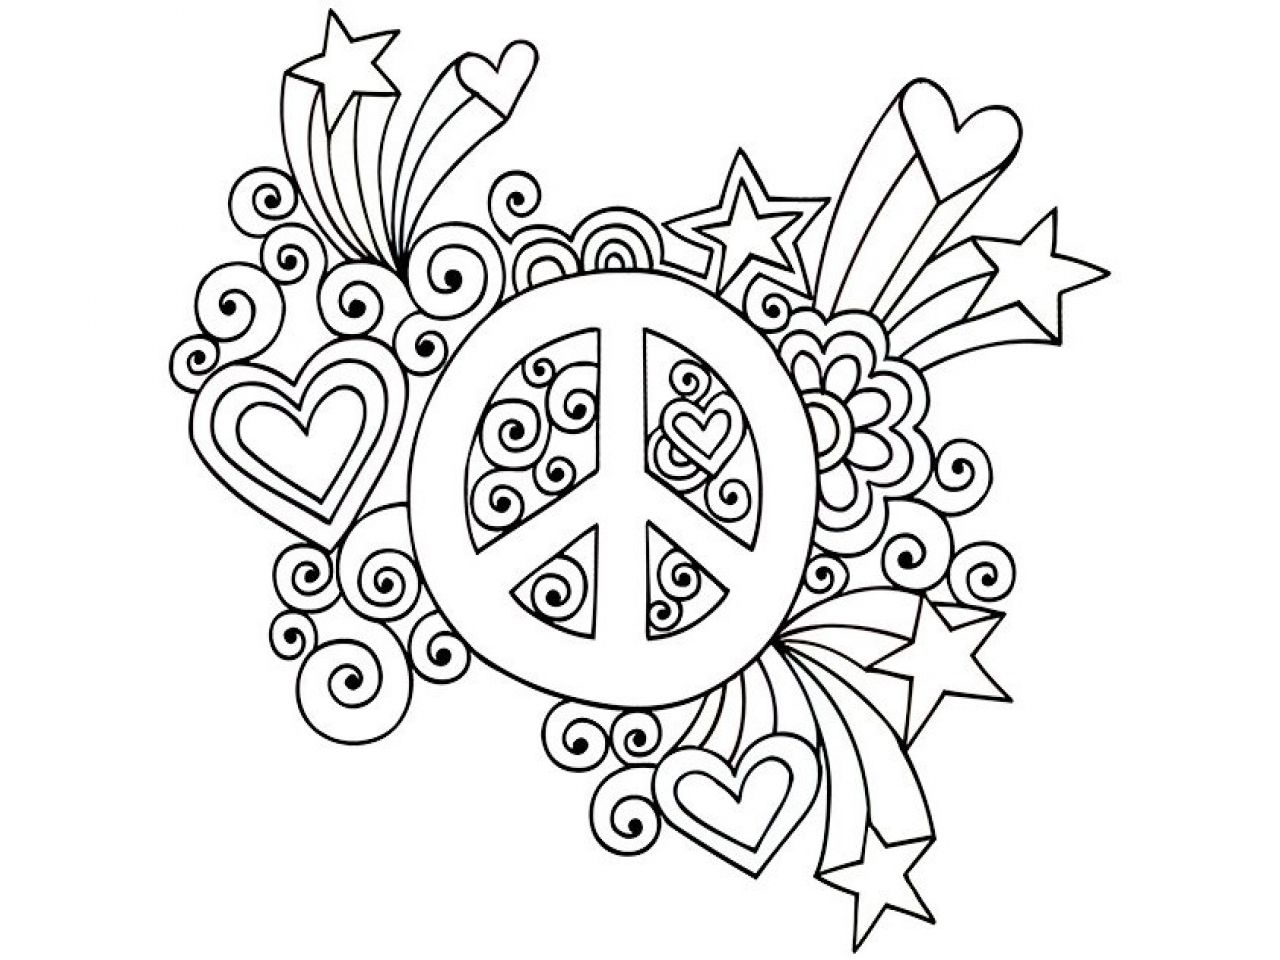 Pin On Hippie Journey To Peace And Light